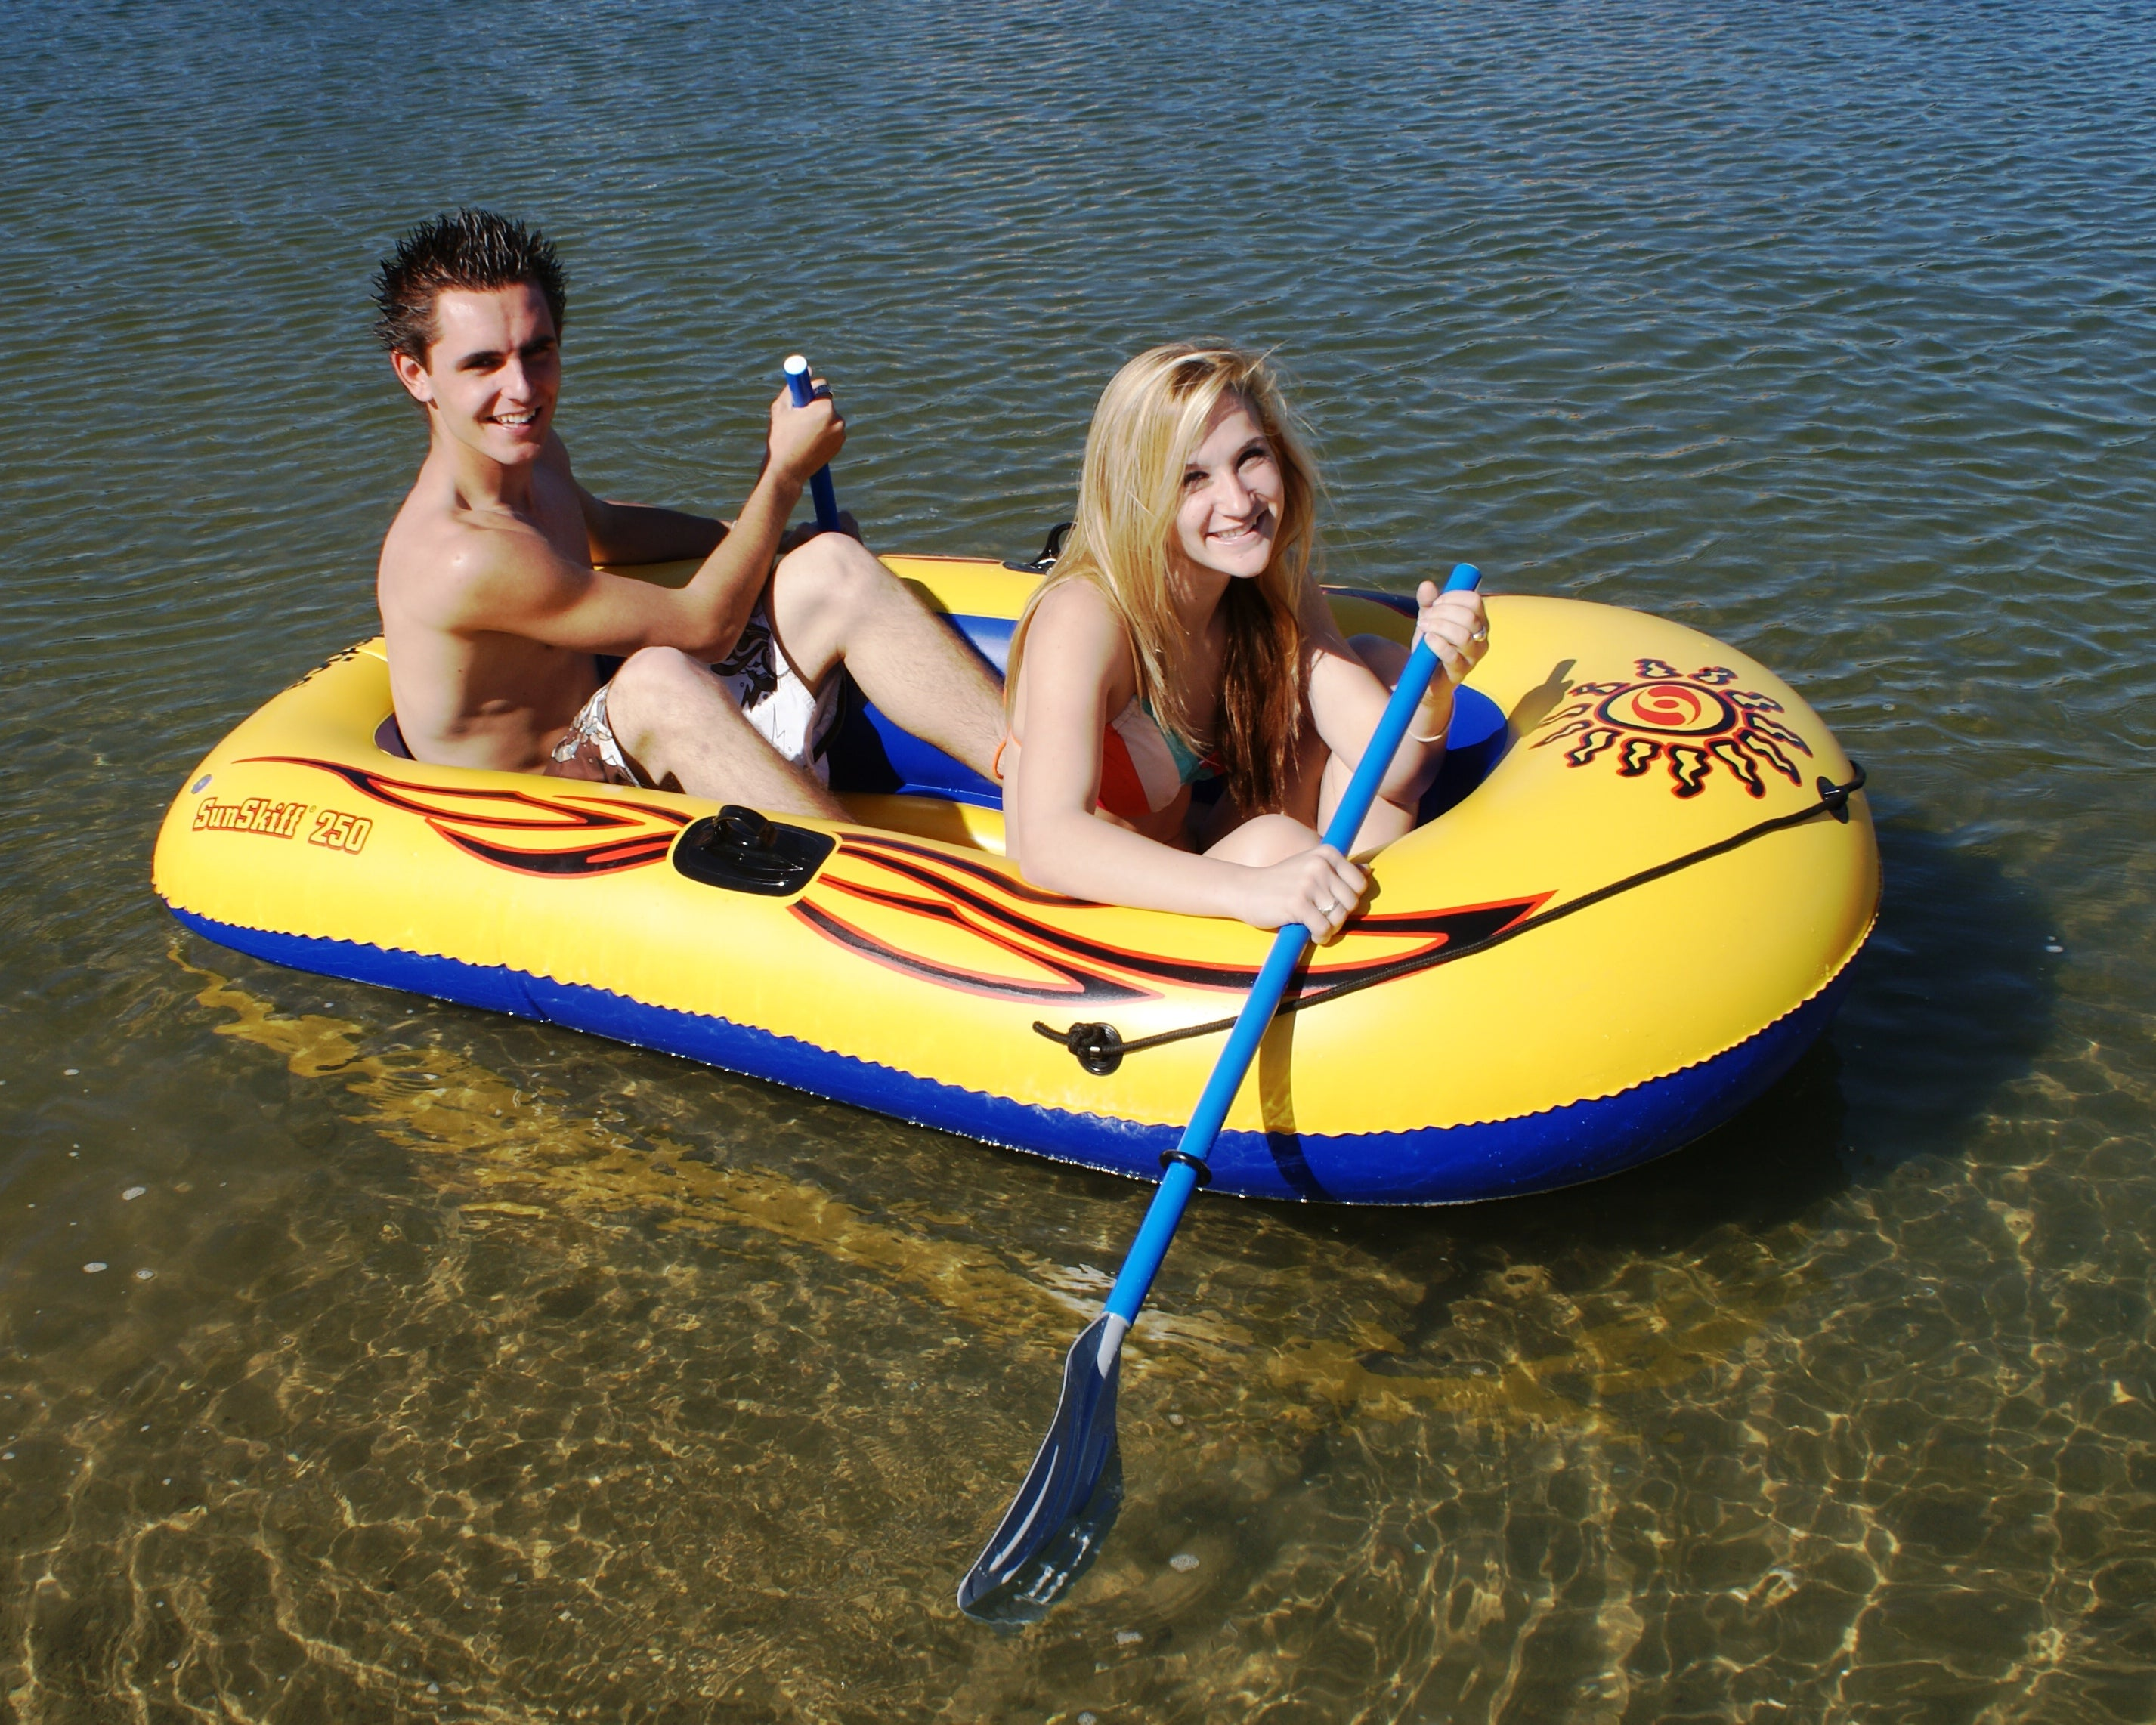 SunSkiff Inflatable Boat Kits